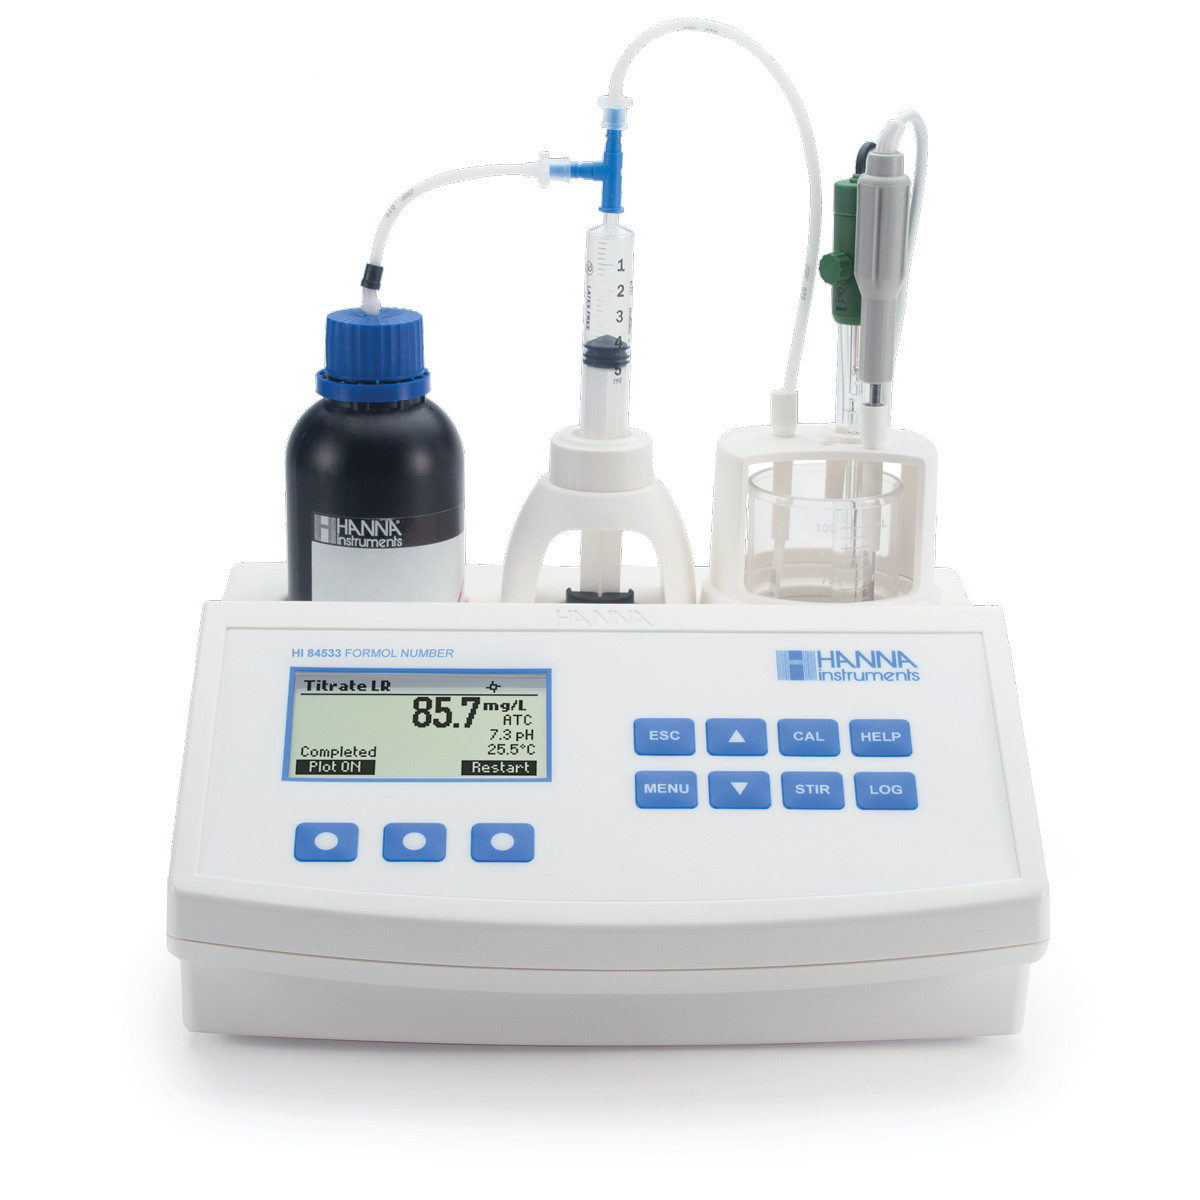 Mini Titrator for Measuring Formol Number in Wine and Fruit Juice